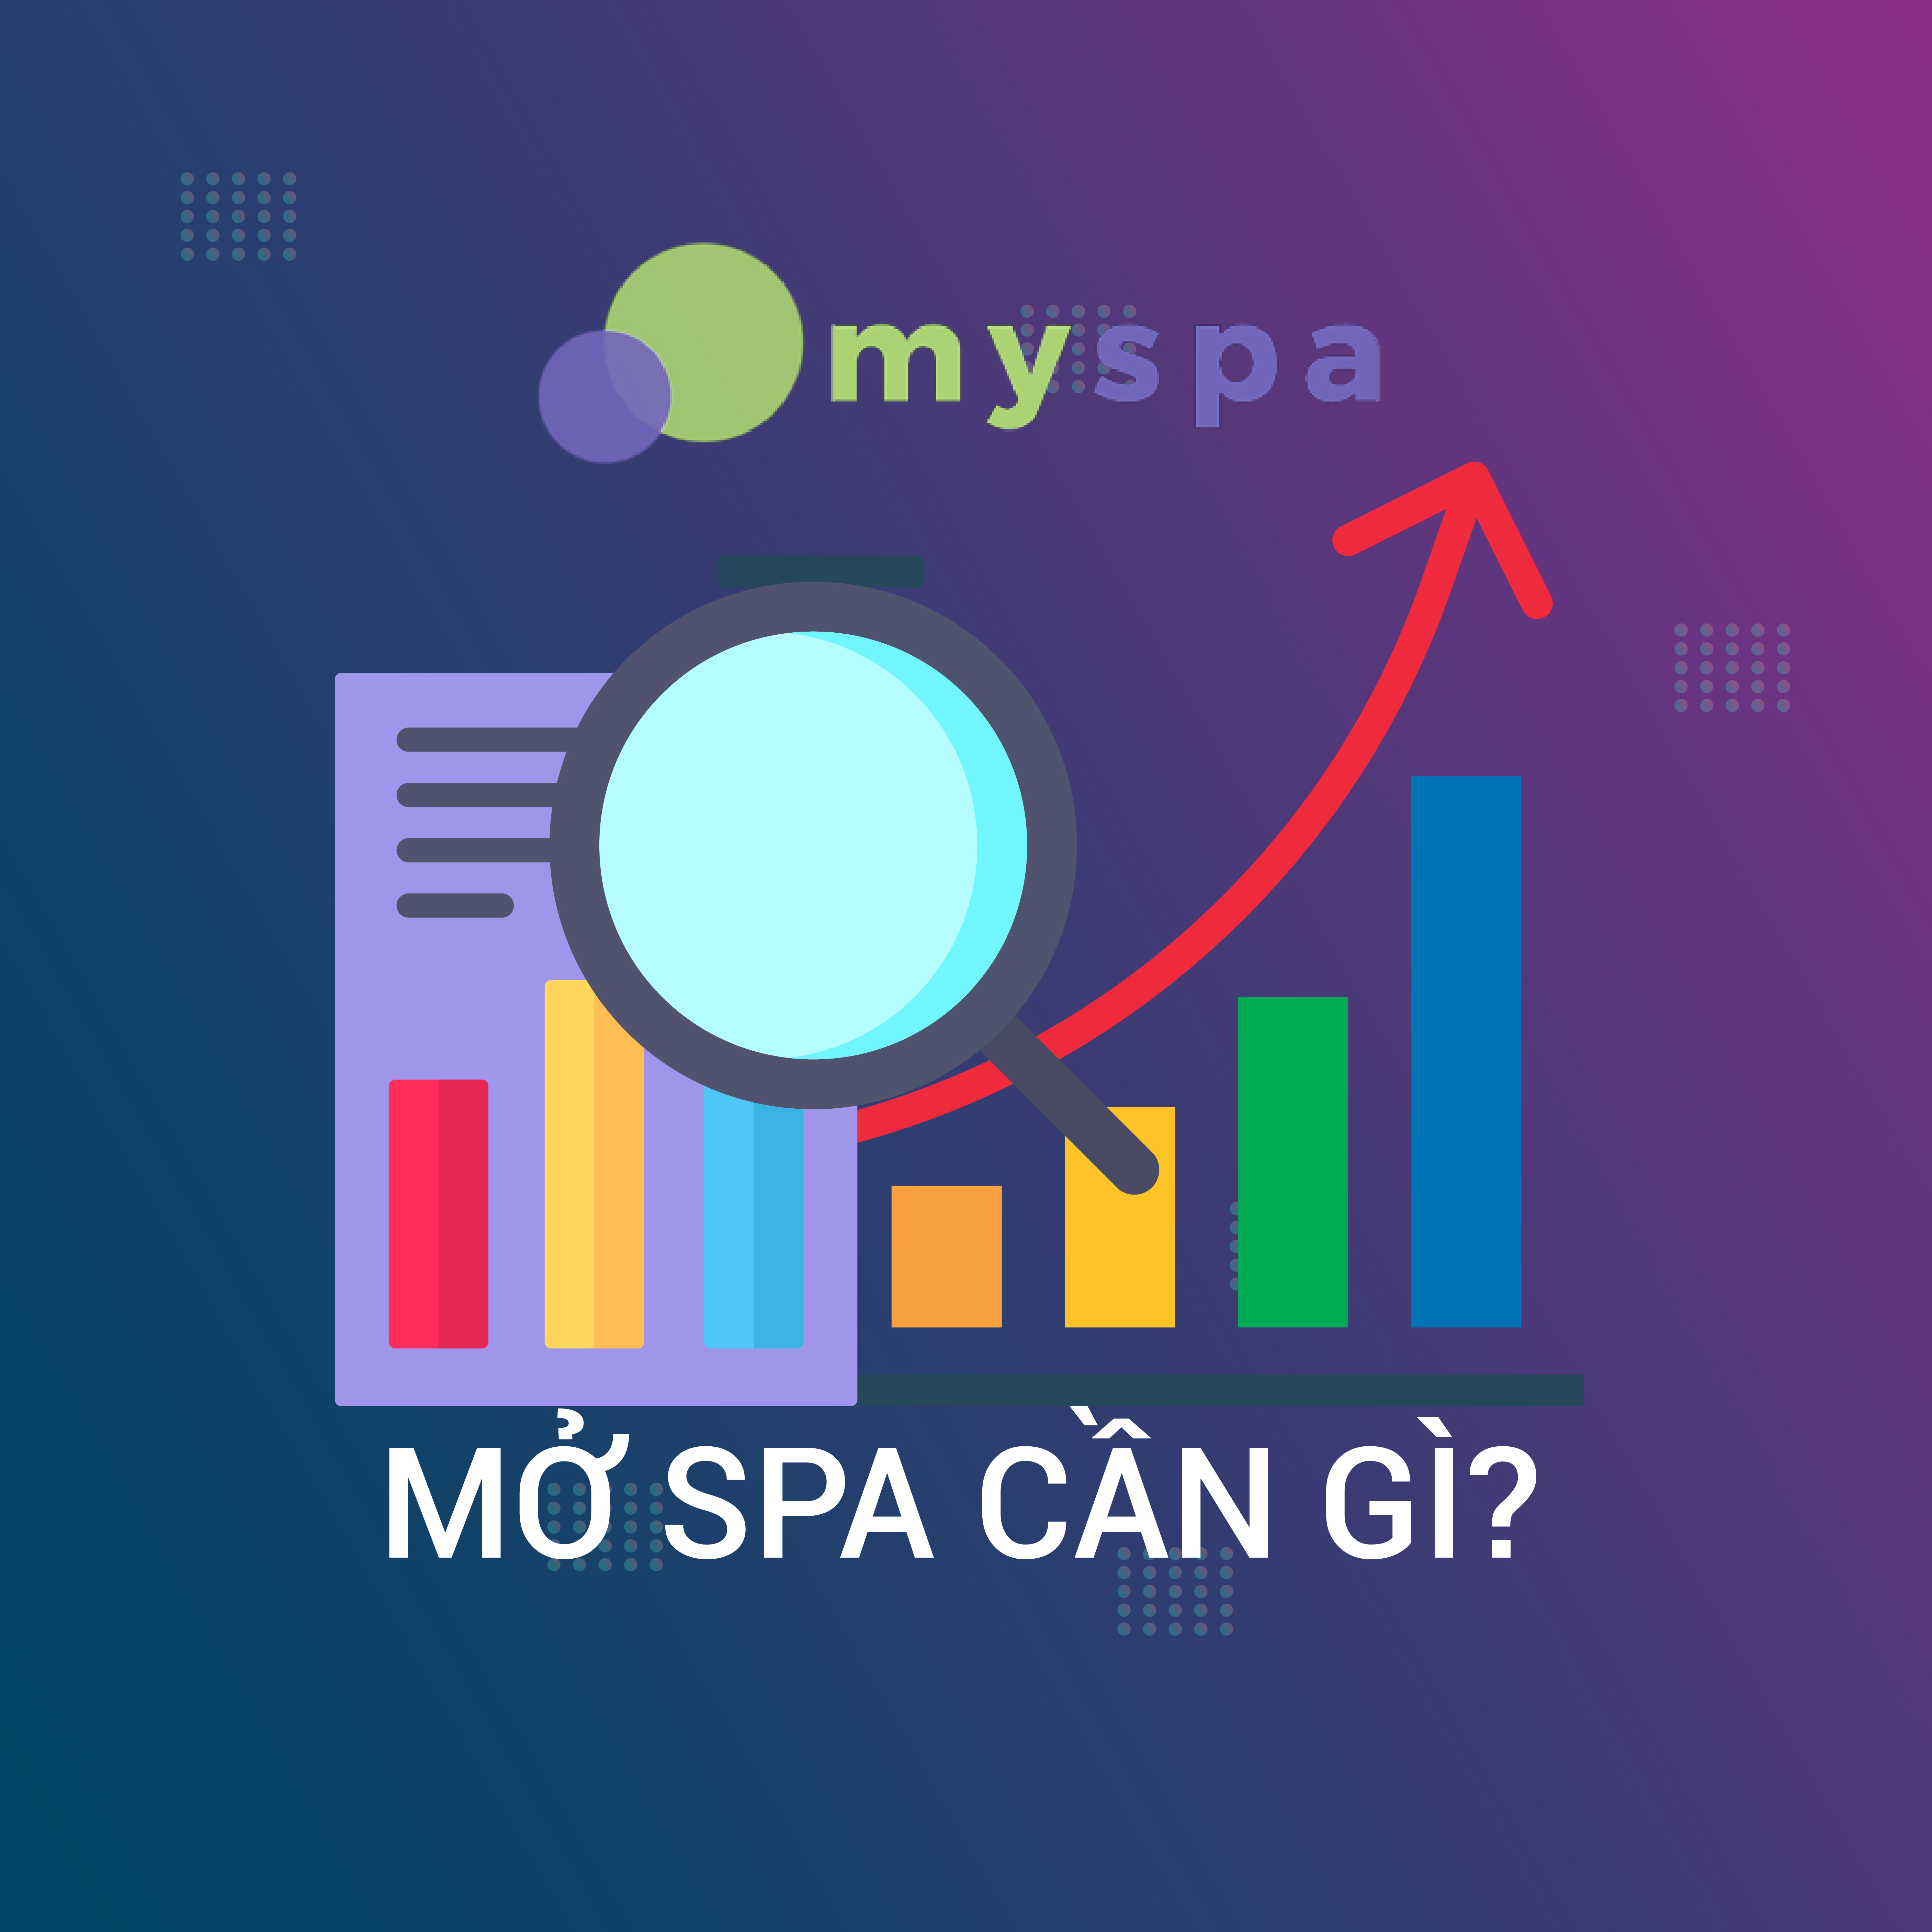 mo-spa-can-gi